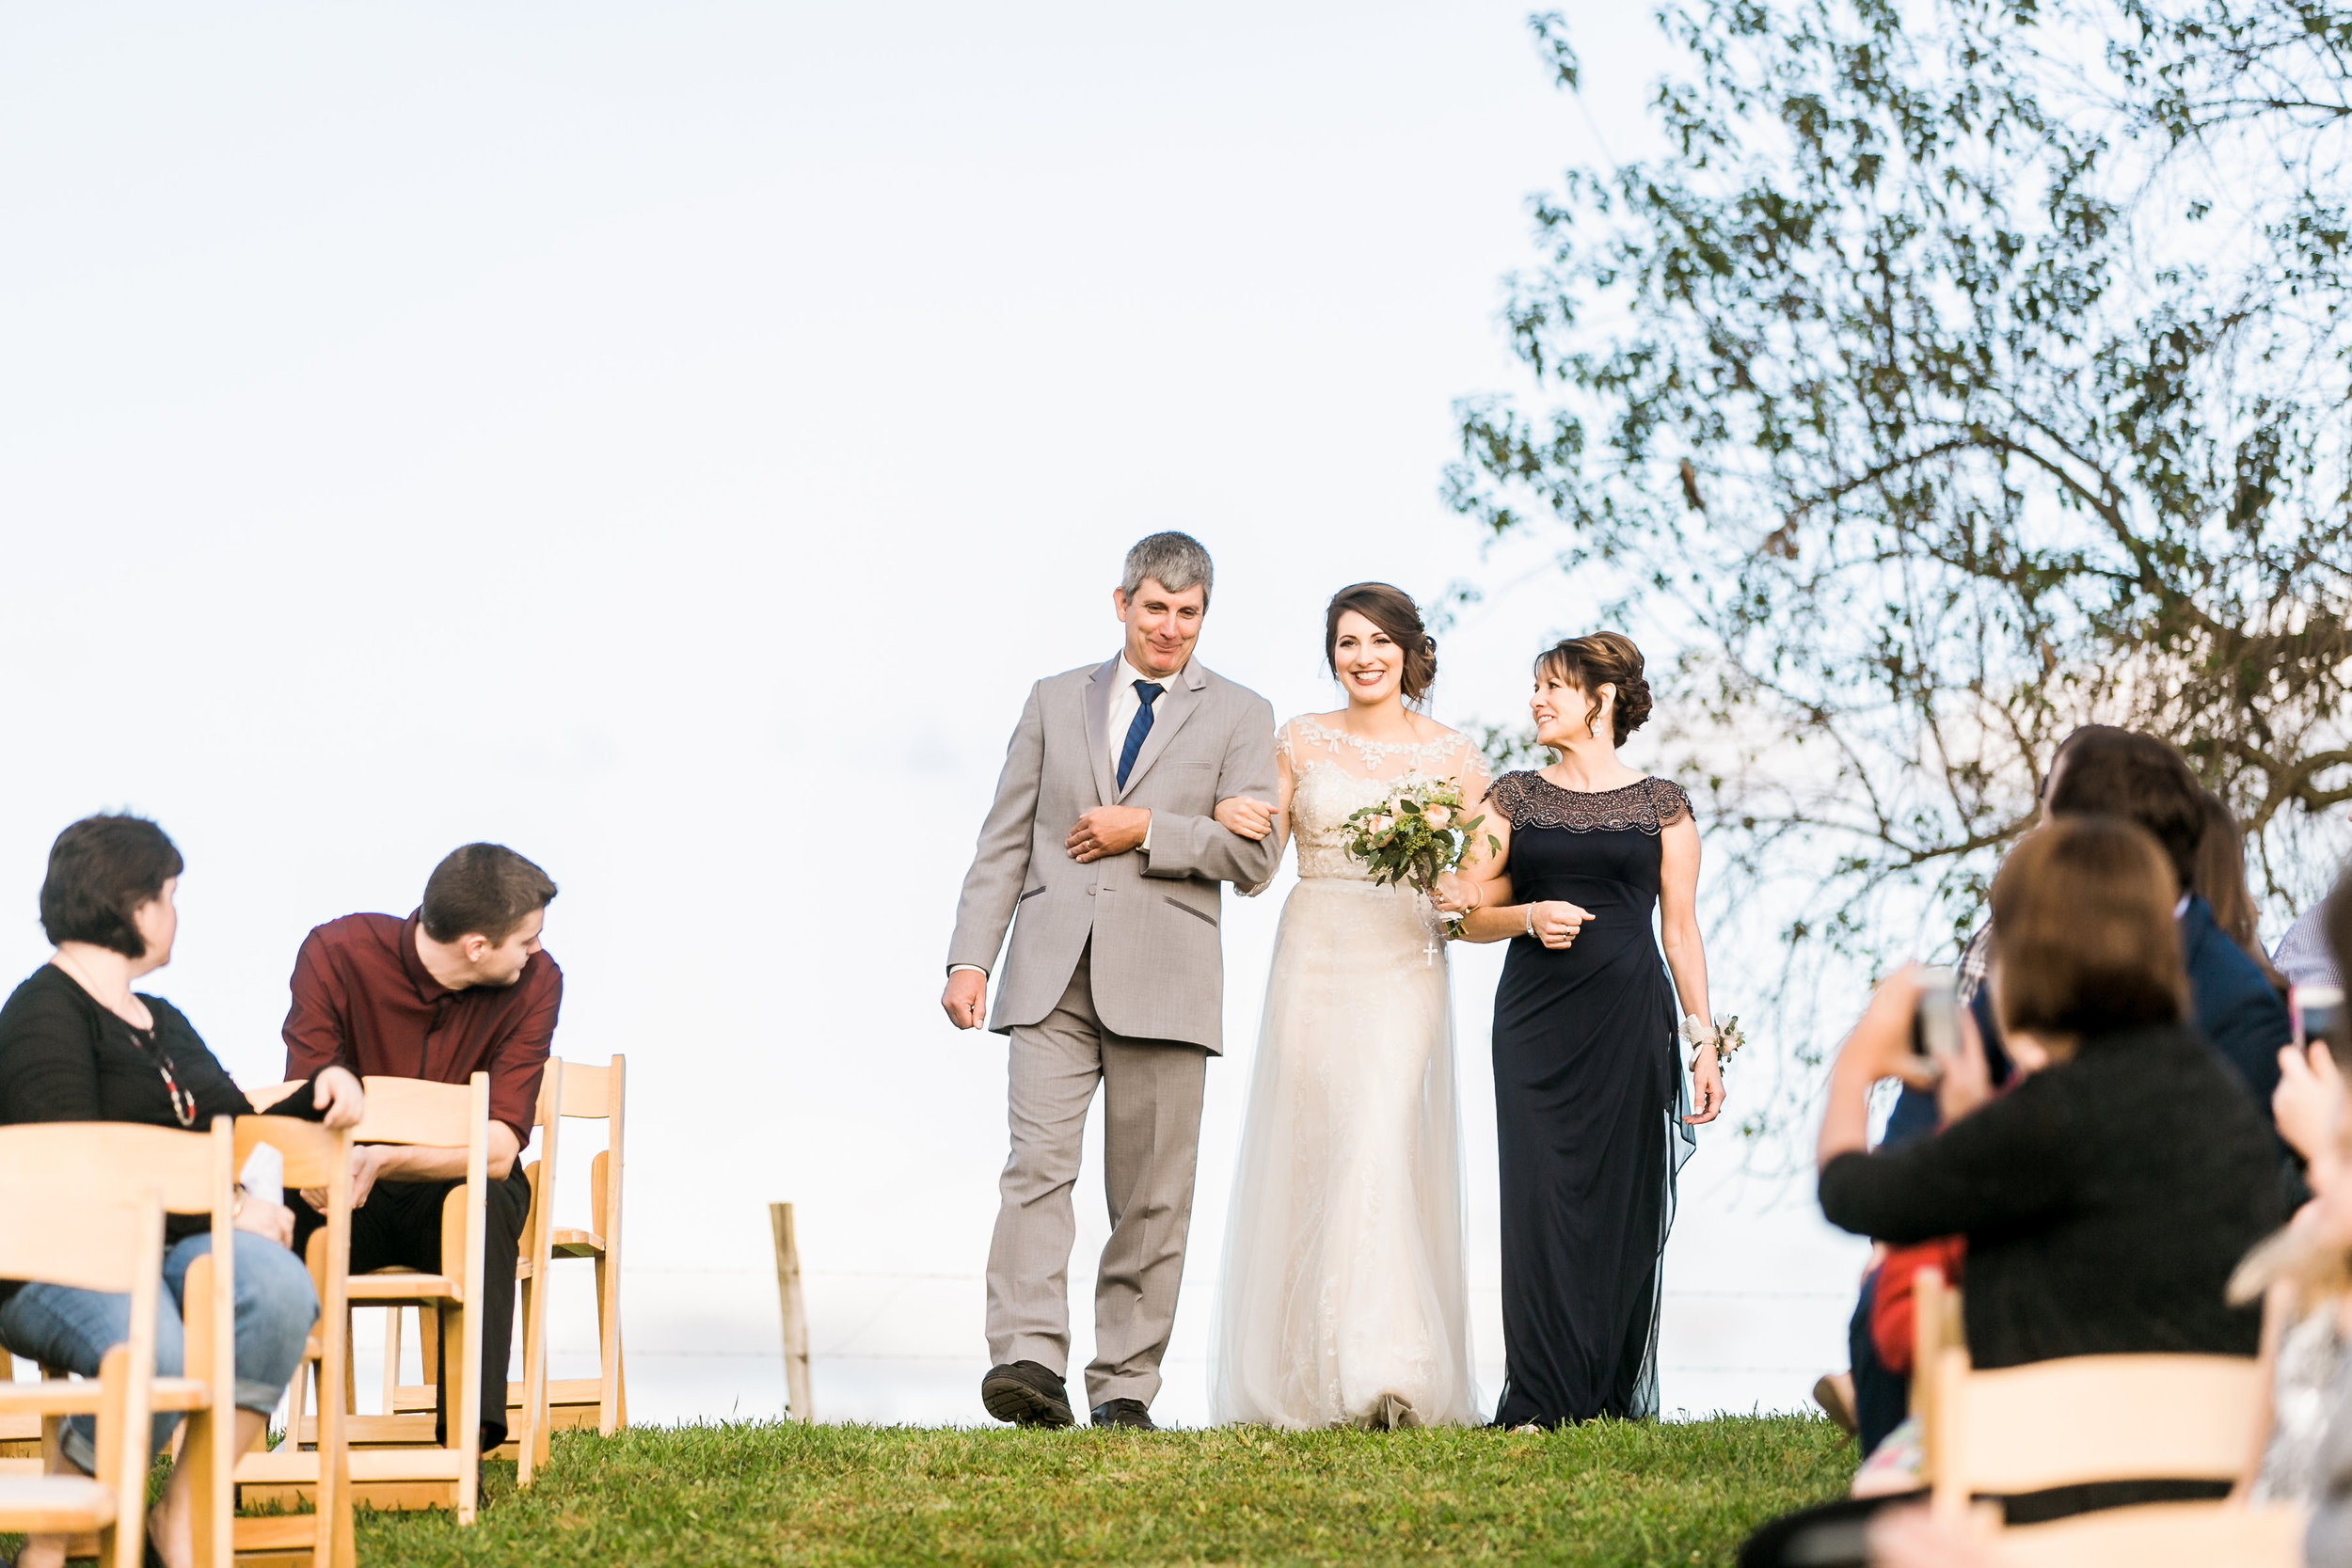 MissouriRusticWedding_StLouisWeddingPhotographer_AliciaDan_CatherineRhodesPhotography-3149-Edit.jpg